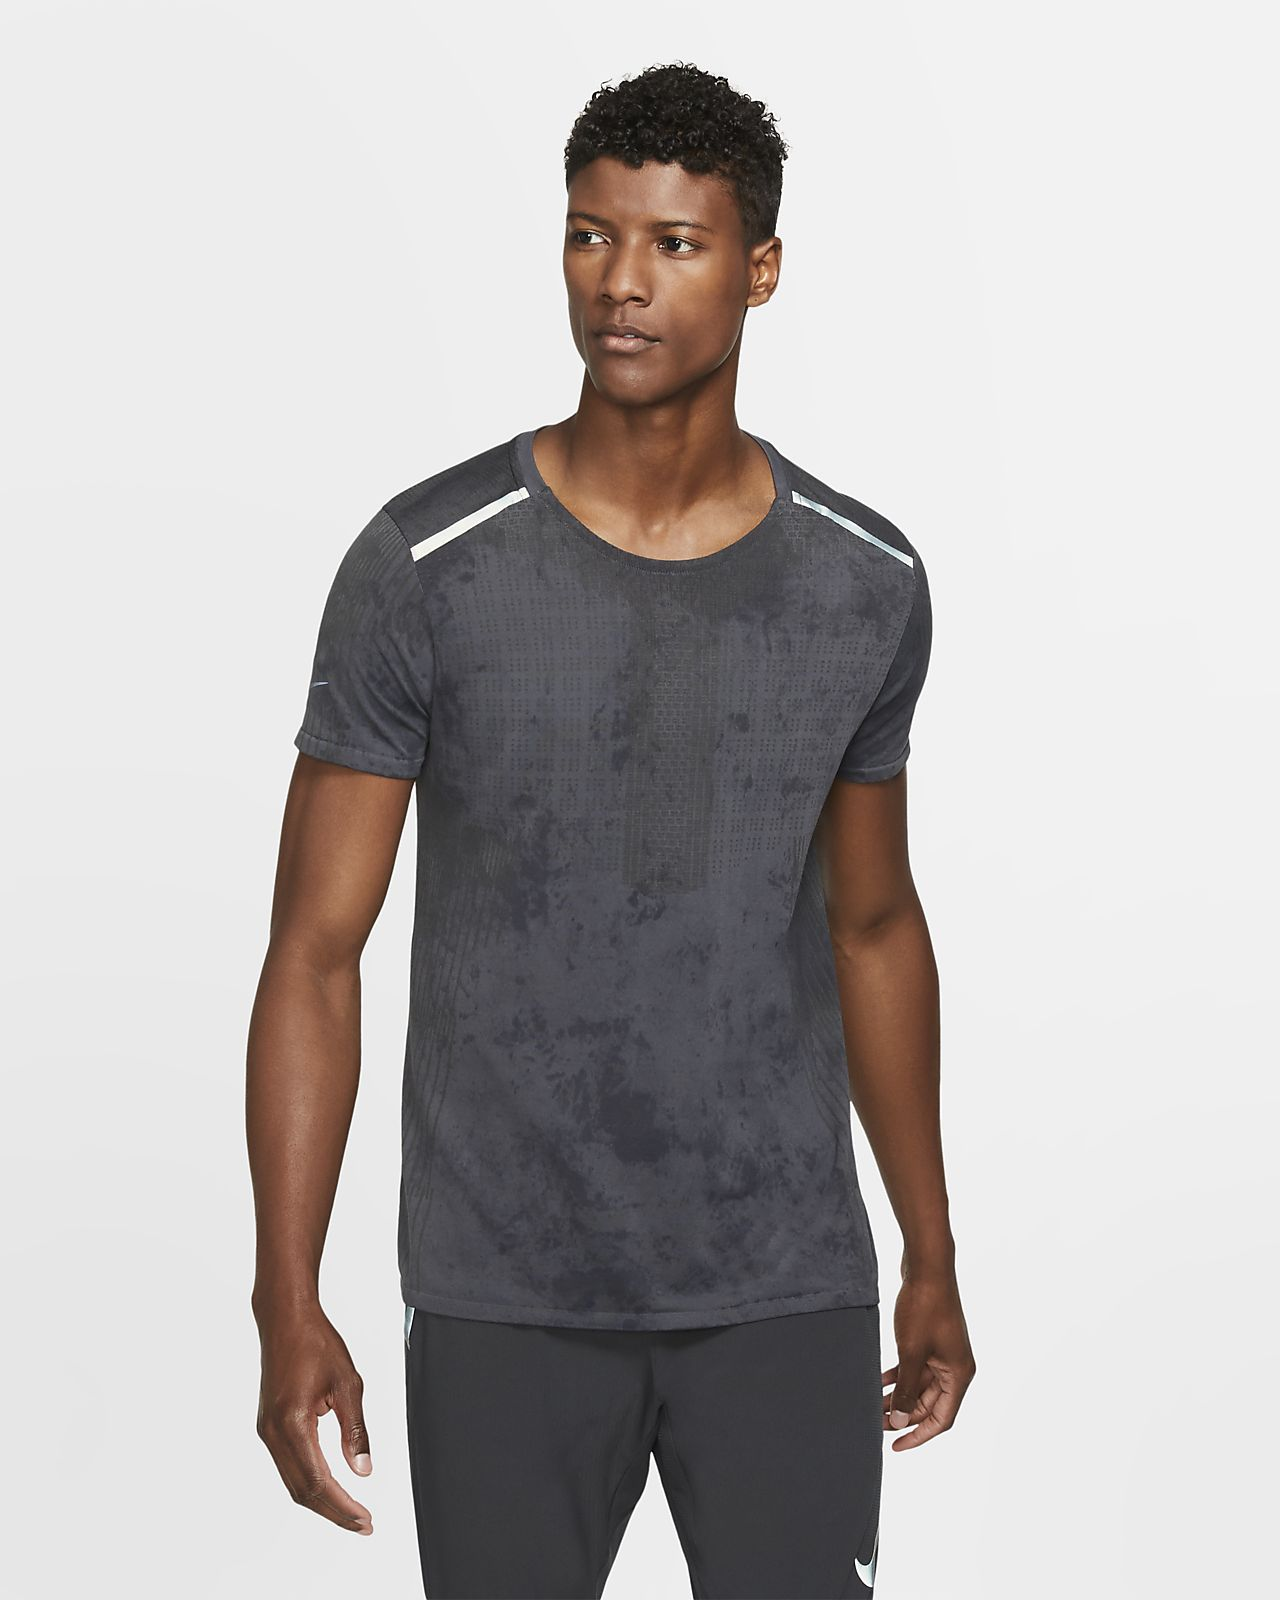 Nike Tech Pack Men's Short-Sleeve Running Top